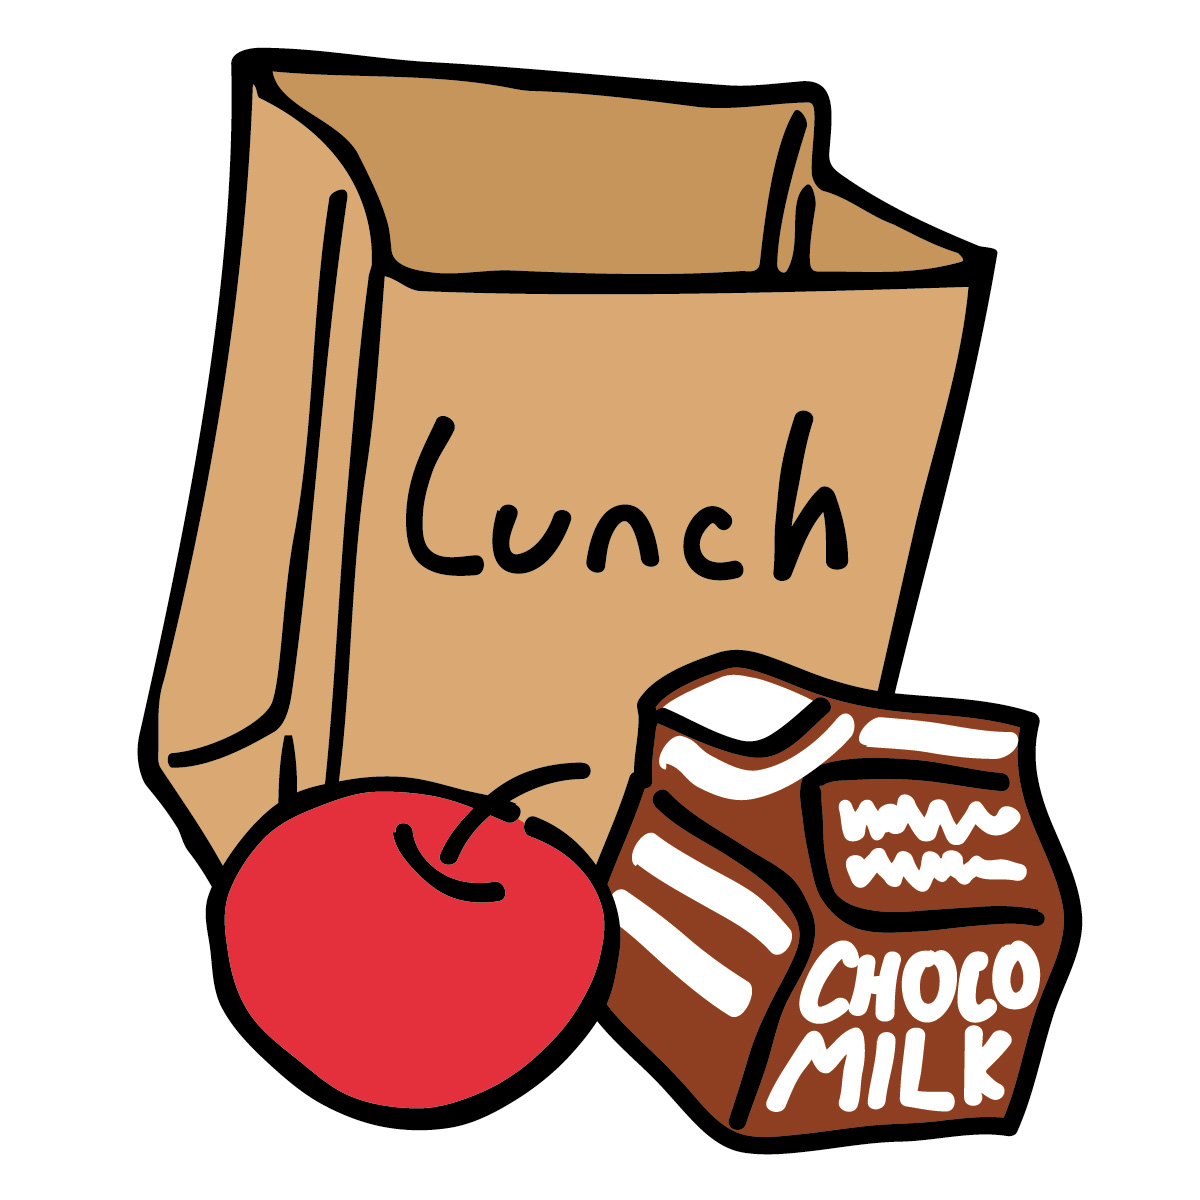 Time clip art panda. Lunch clipart image free stock